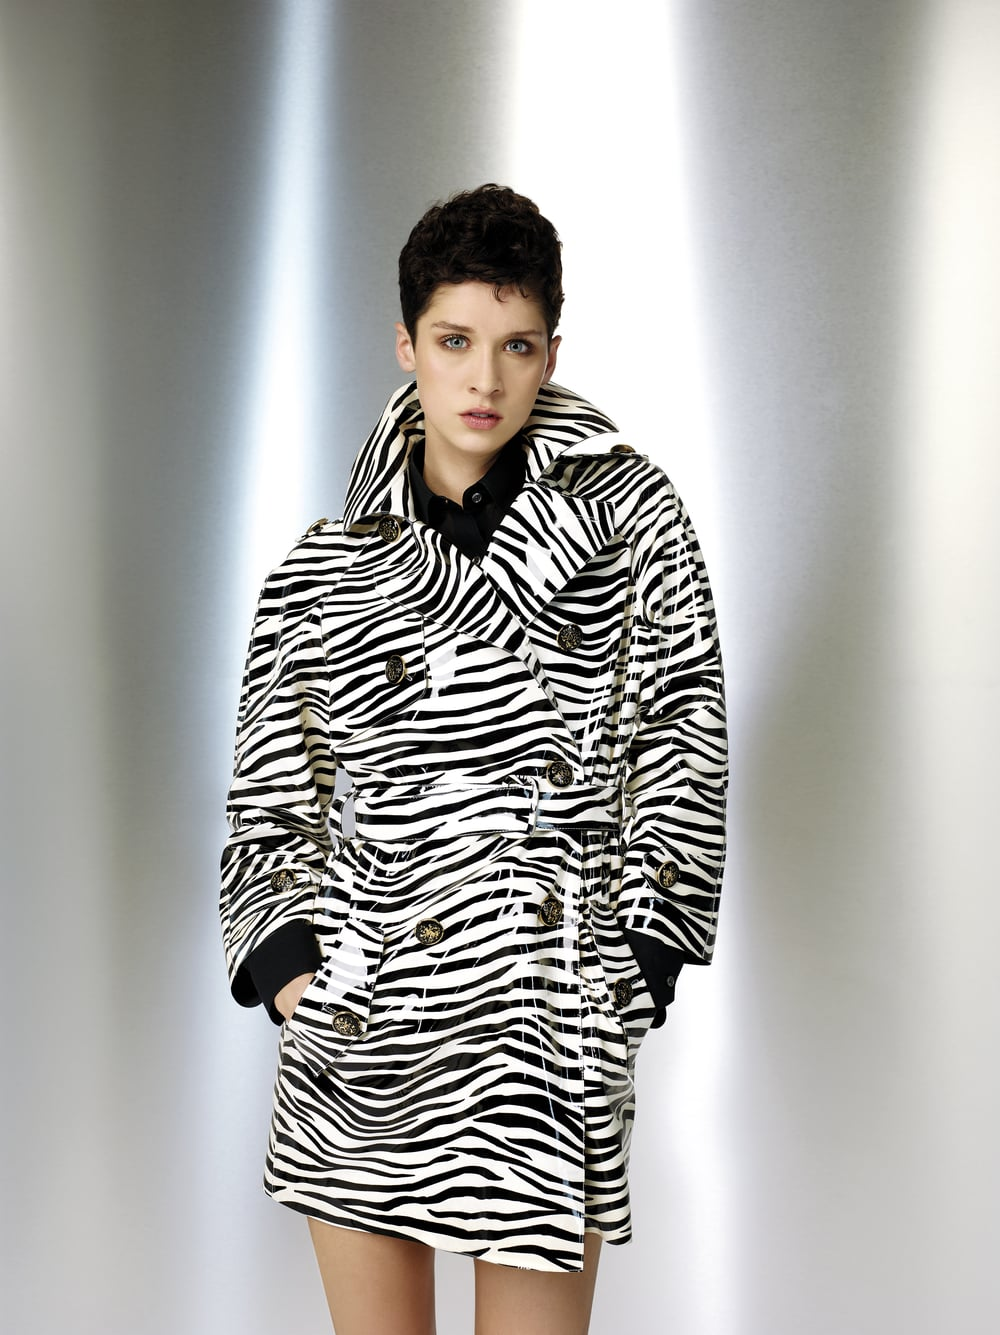 008_Patent_Leather_Trench.jpg